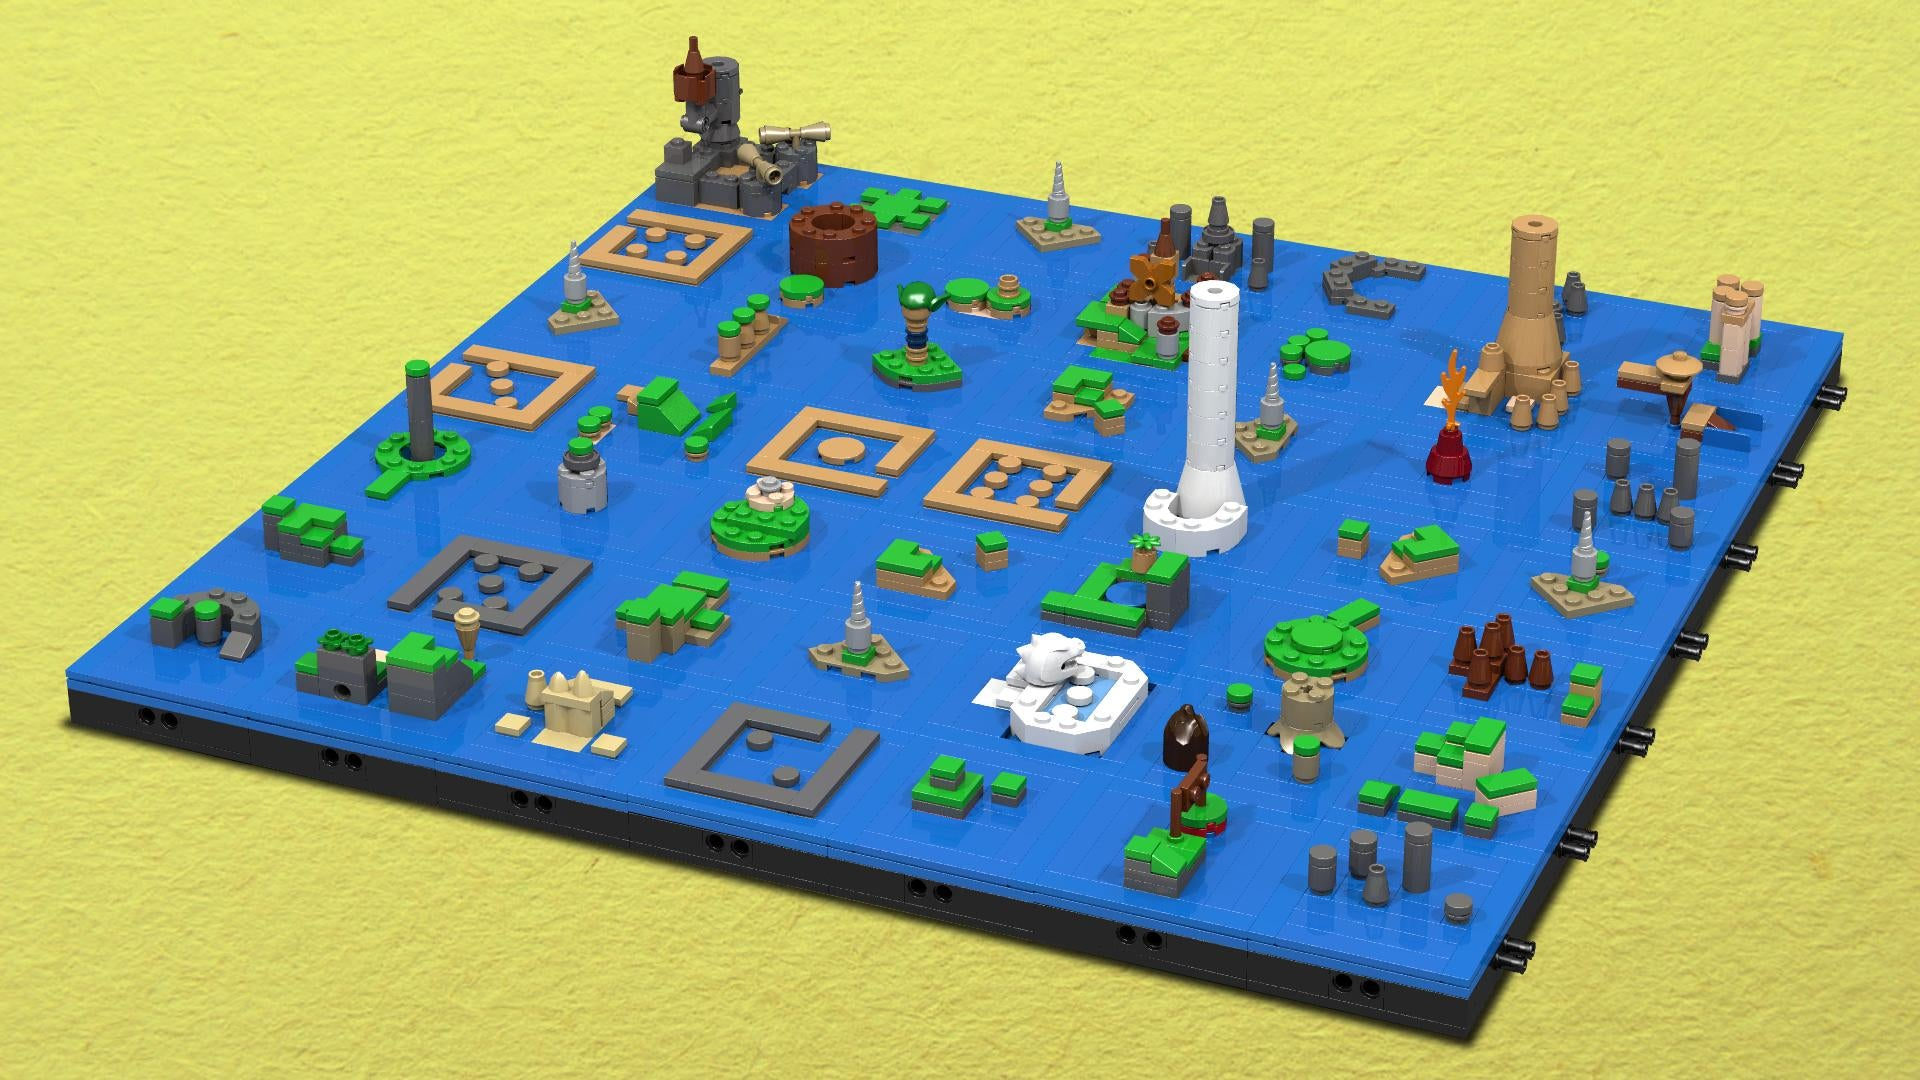 The Legend of Zelda: The Wind Waker's Sea Chart as a LEGO Microbuild